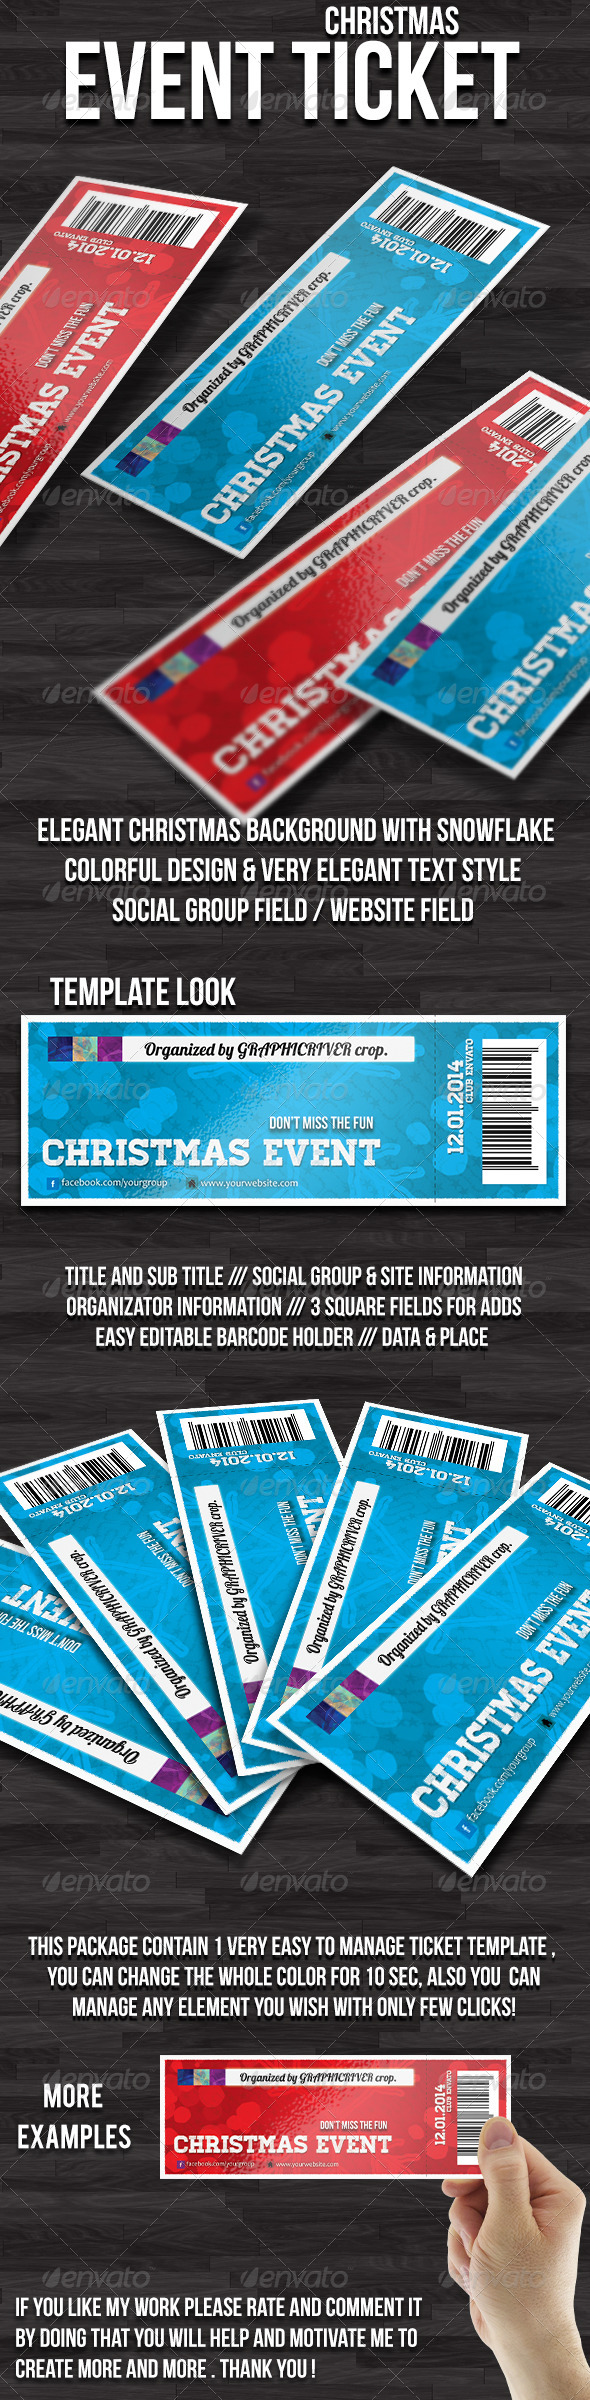 Christmas Event Graphics Designs Templates From Graphicriver